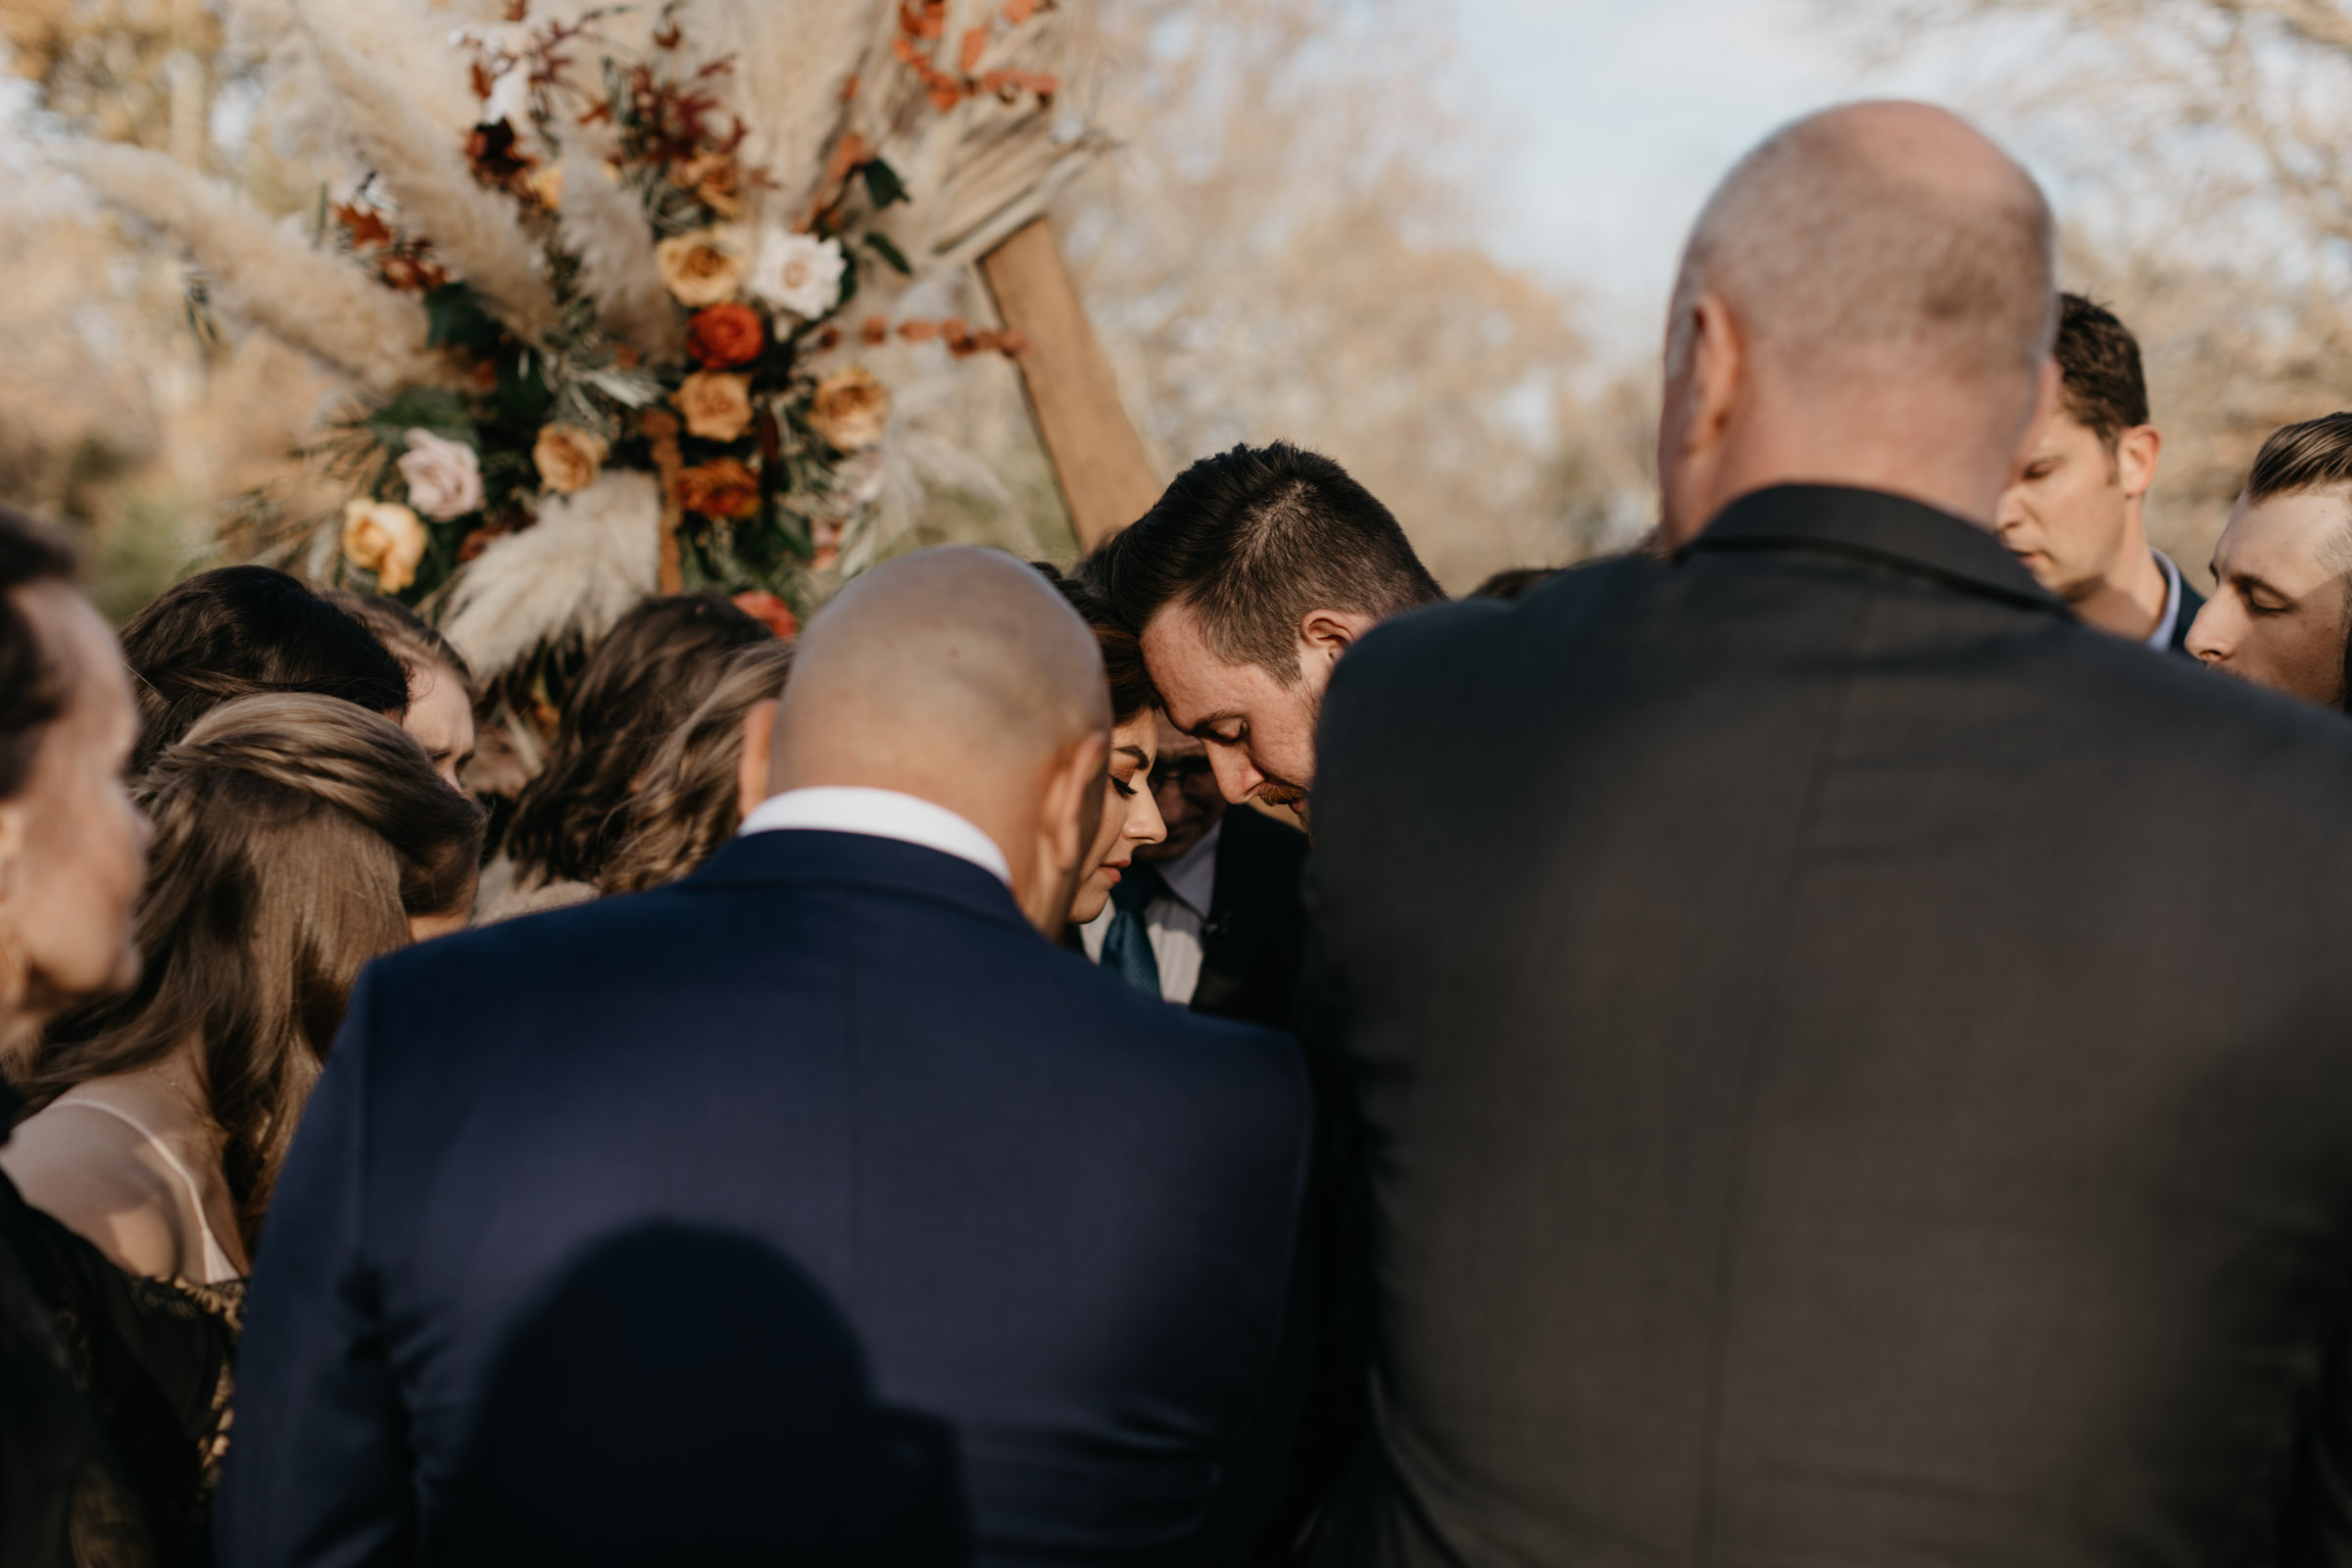 Bride and groom praying emotionally during wedding ceremony